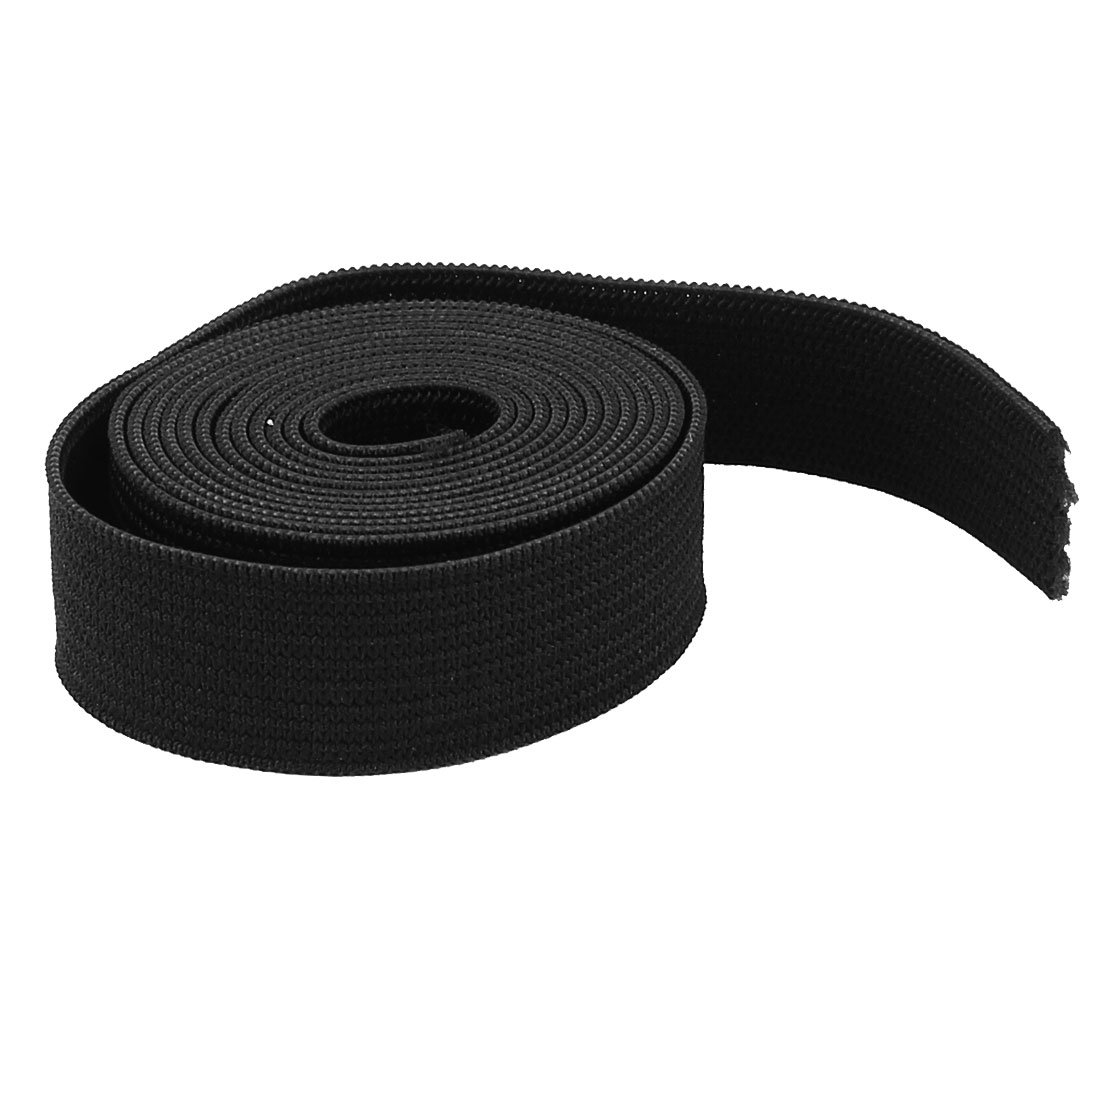 uxcell Clothing Hairband DIY Craft Black Elastic Band Sewing Tailor Tool 1M a15041400ux0120